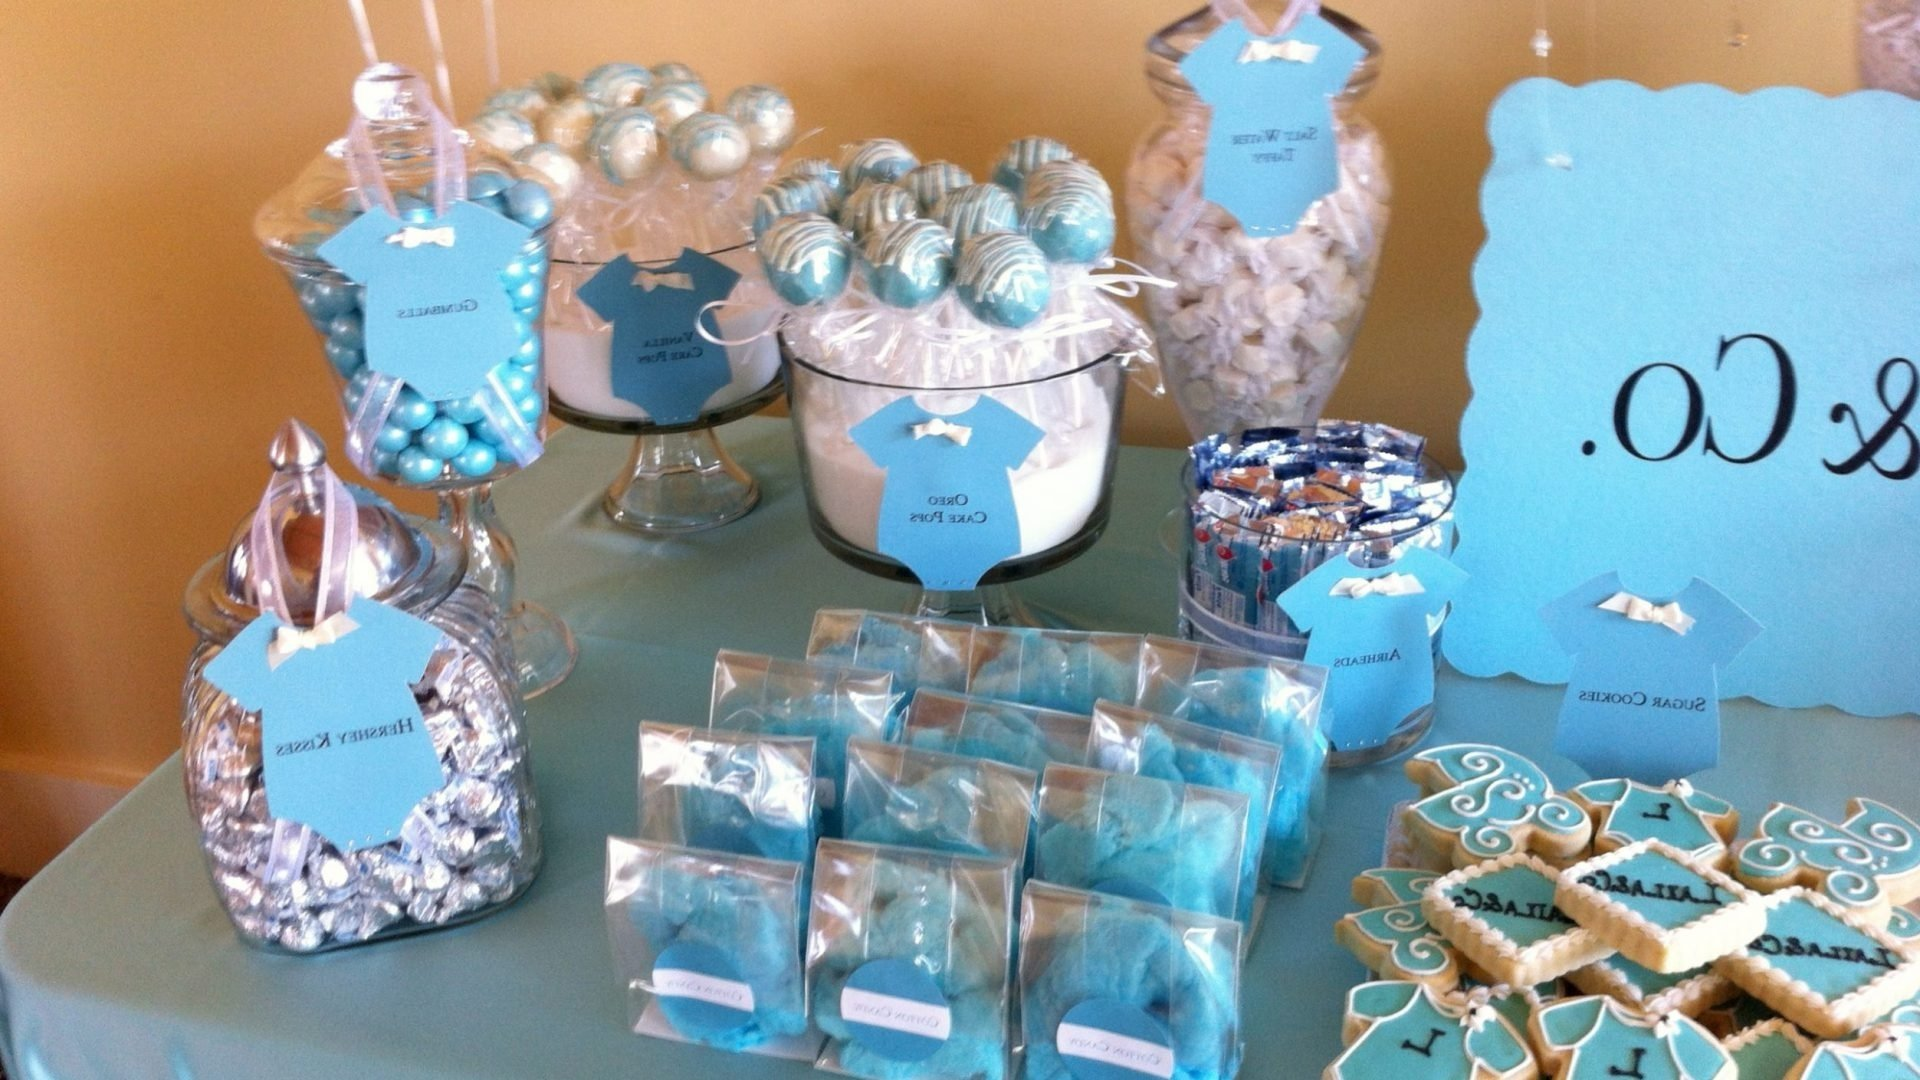 10 Pretty Candy Table Ideas For Baby Shower pink babyr candy table ideas girl boy formidable 6707234 orig baby